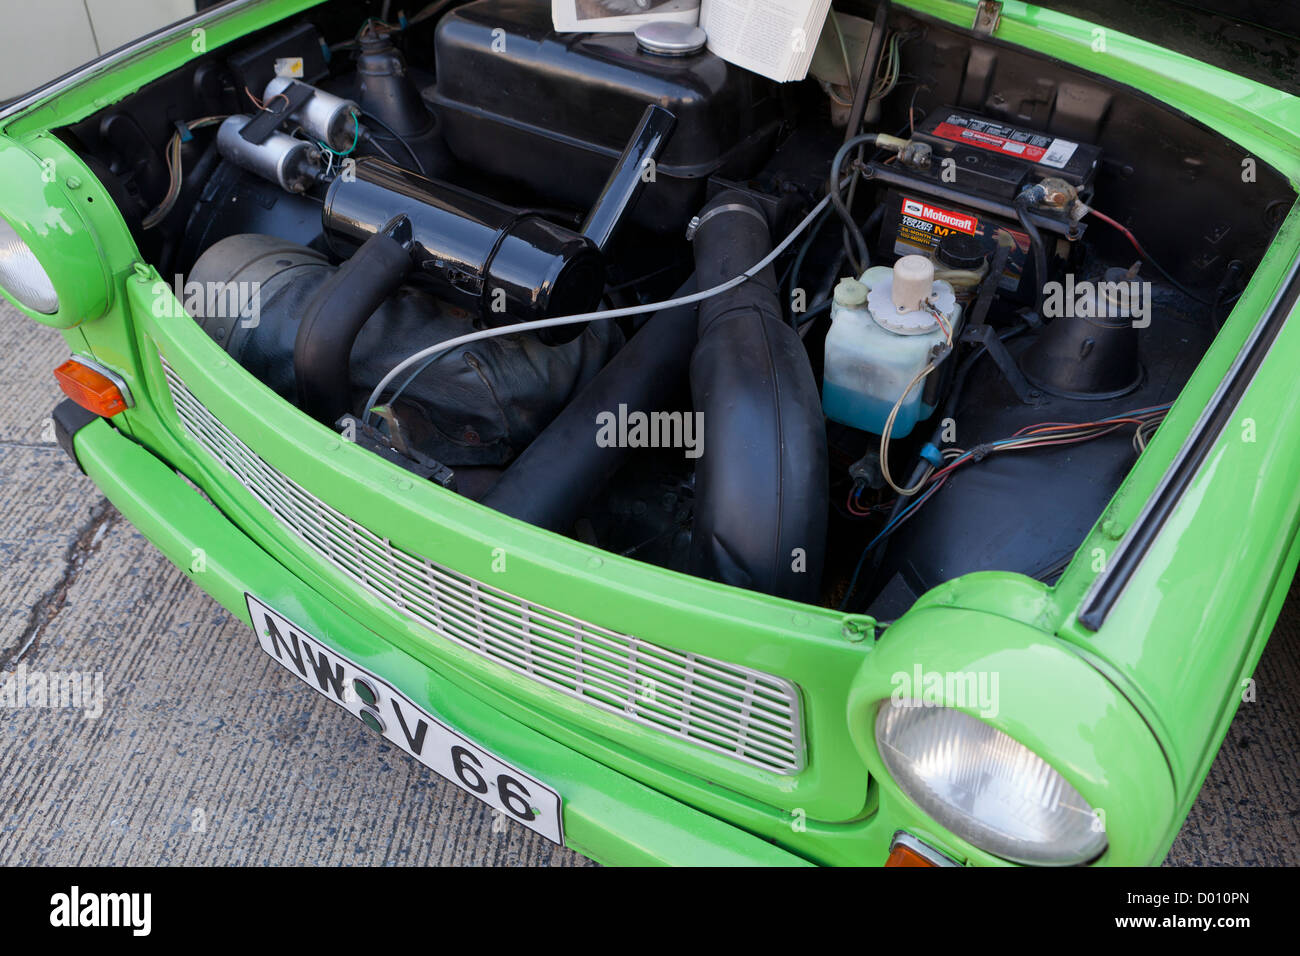 Trabant two-stroke engine East German car - Stock Image